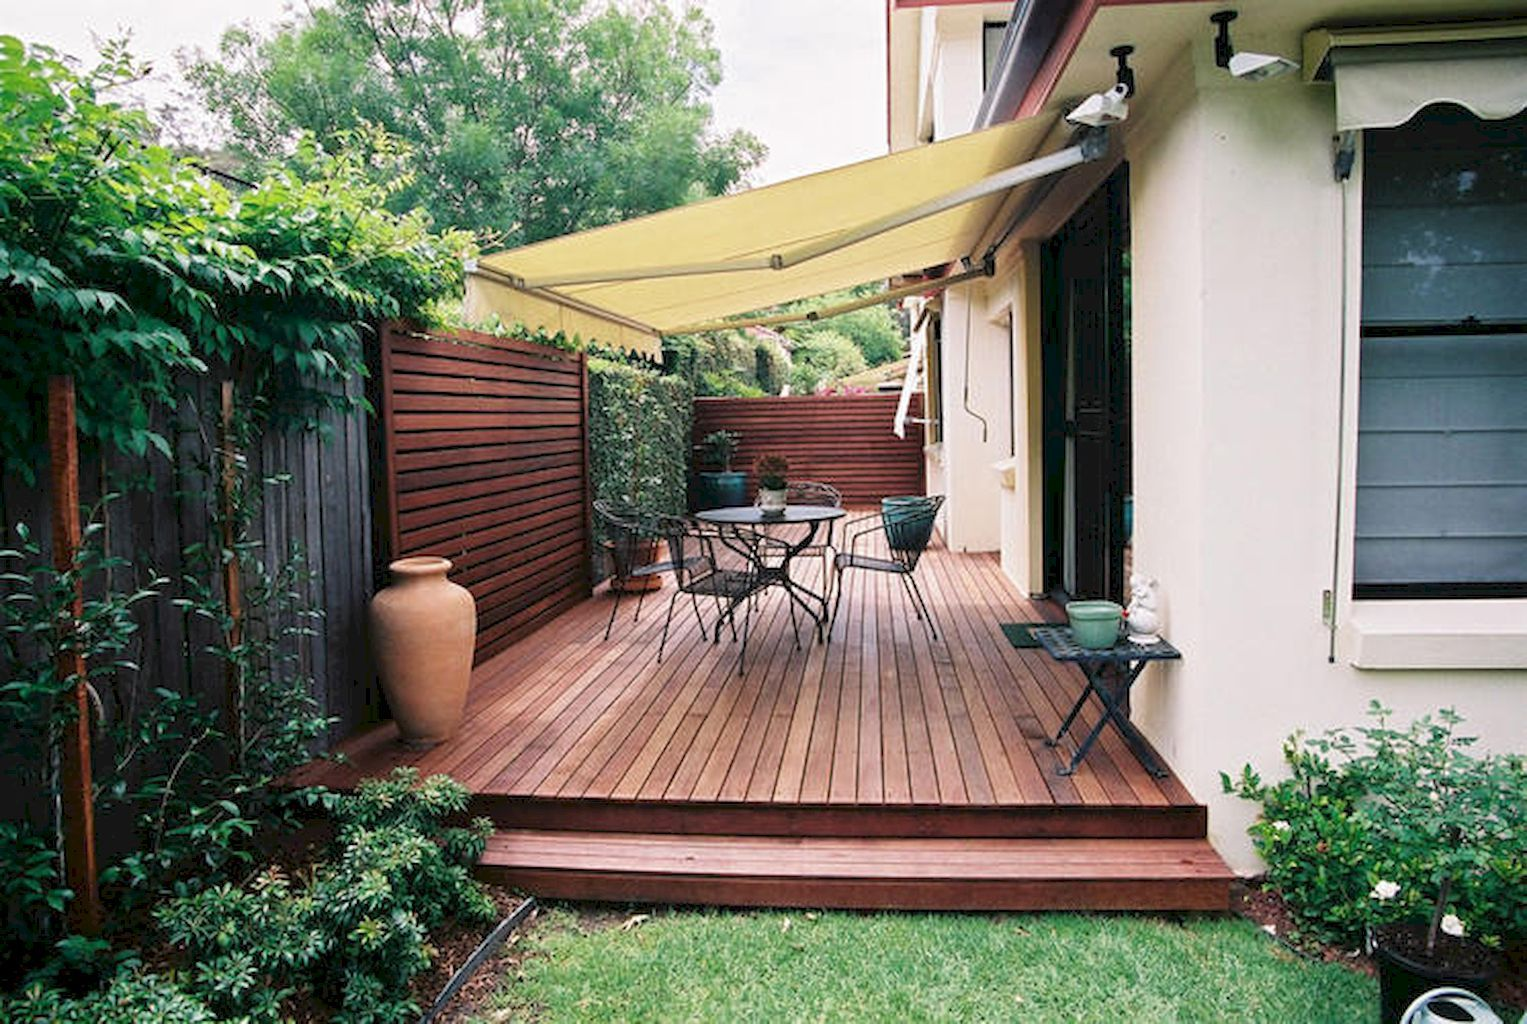 70 creative diy backyard privacy ideas on a budget backyard deck rh pinterest com small backyard privacy landscaping ideas